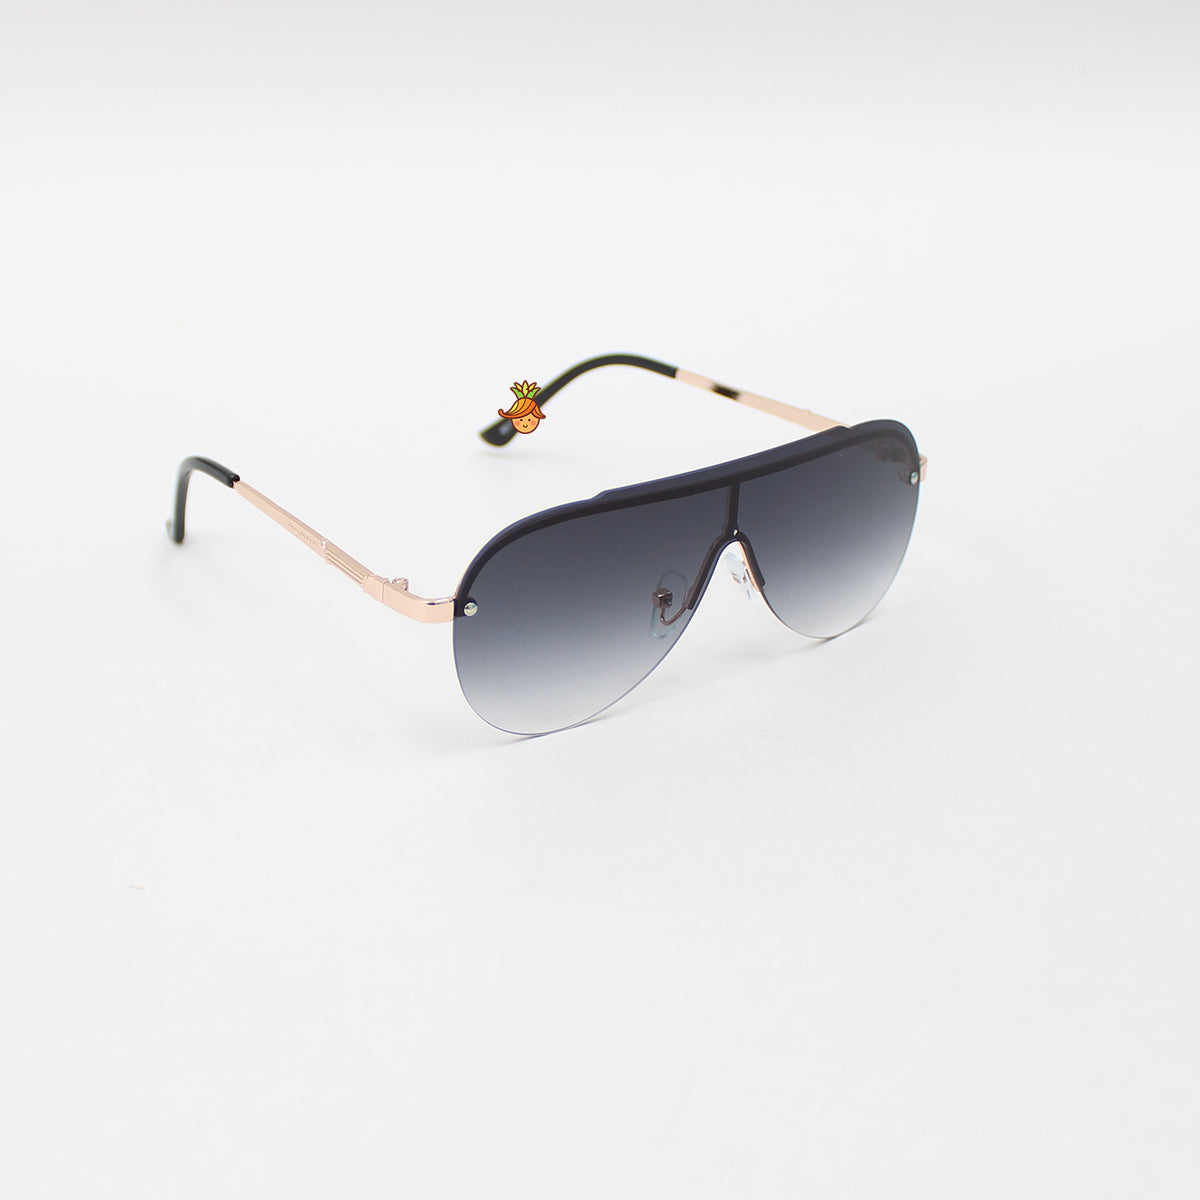 Stylish Black Rimless Sunglasses